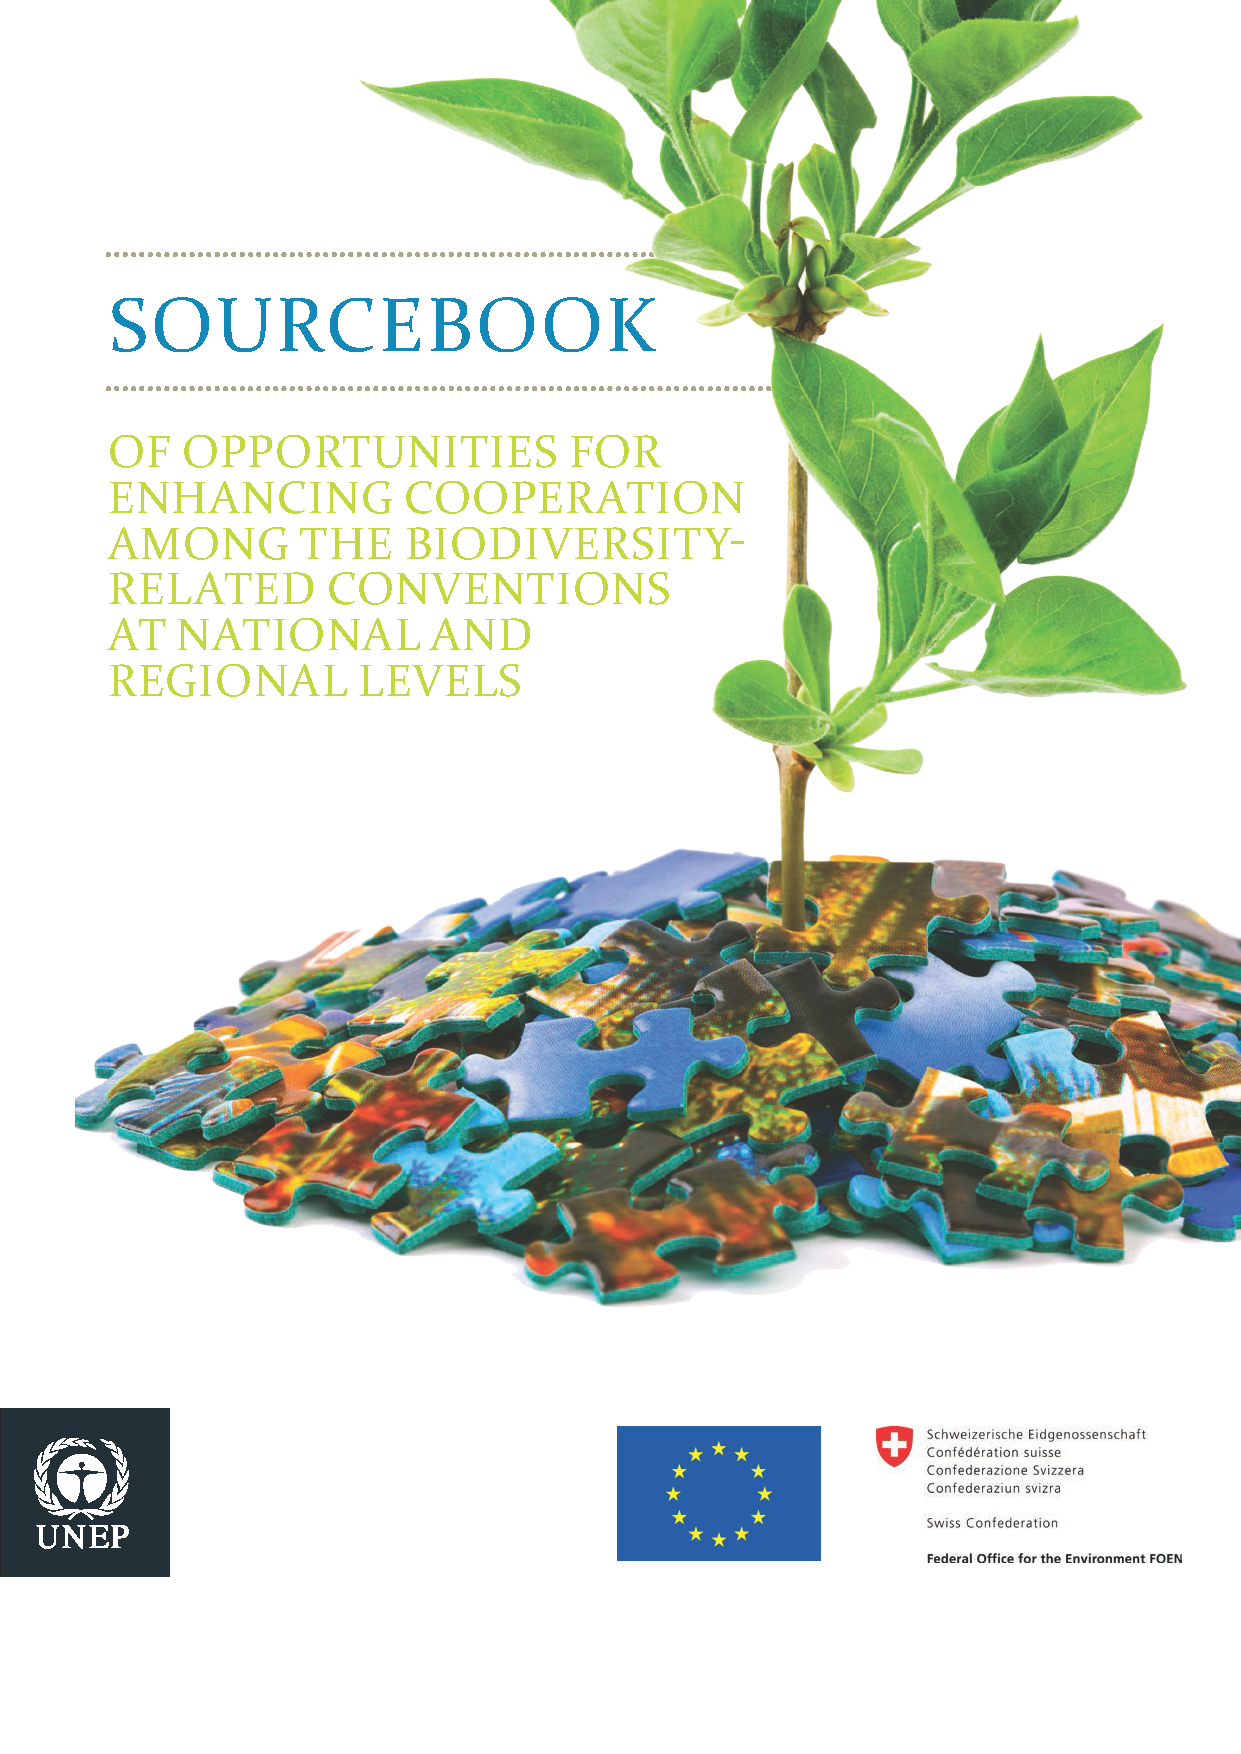 Capa da Sourcebook of opportunities for enhancing cooperation among the Biodiversity-related Conventions at national and regional levels